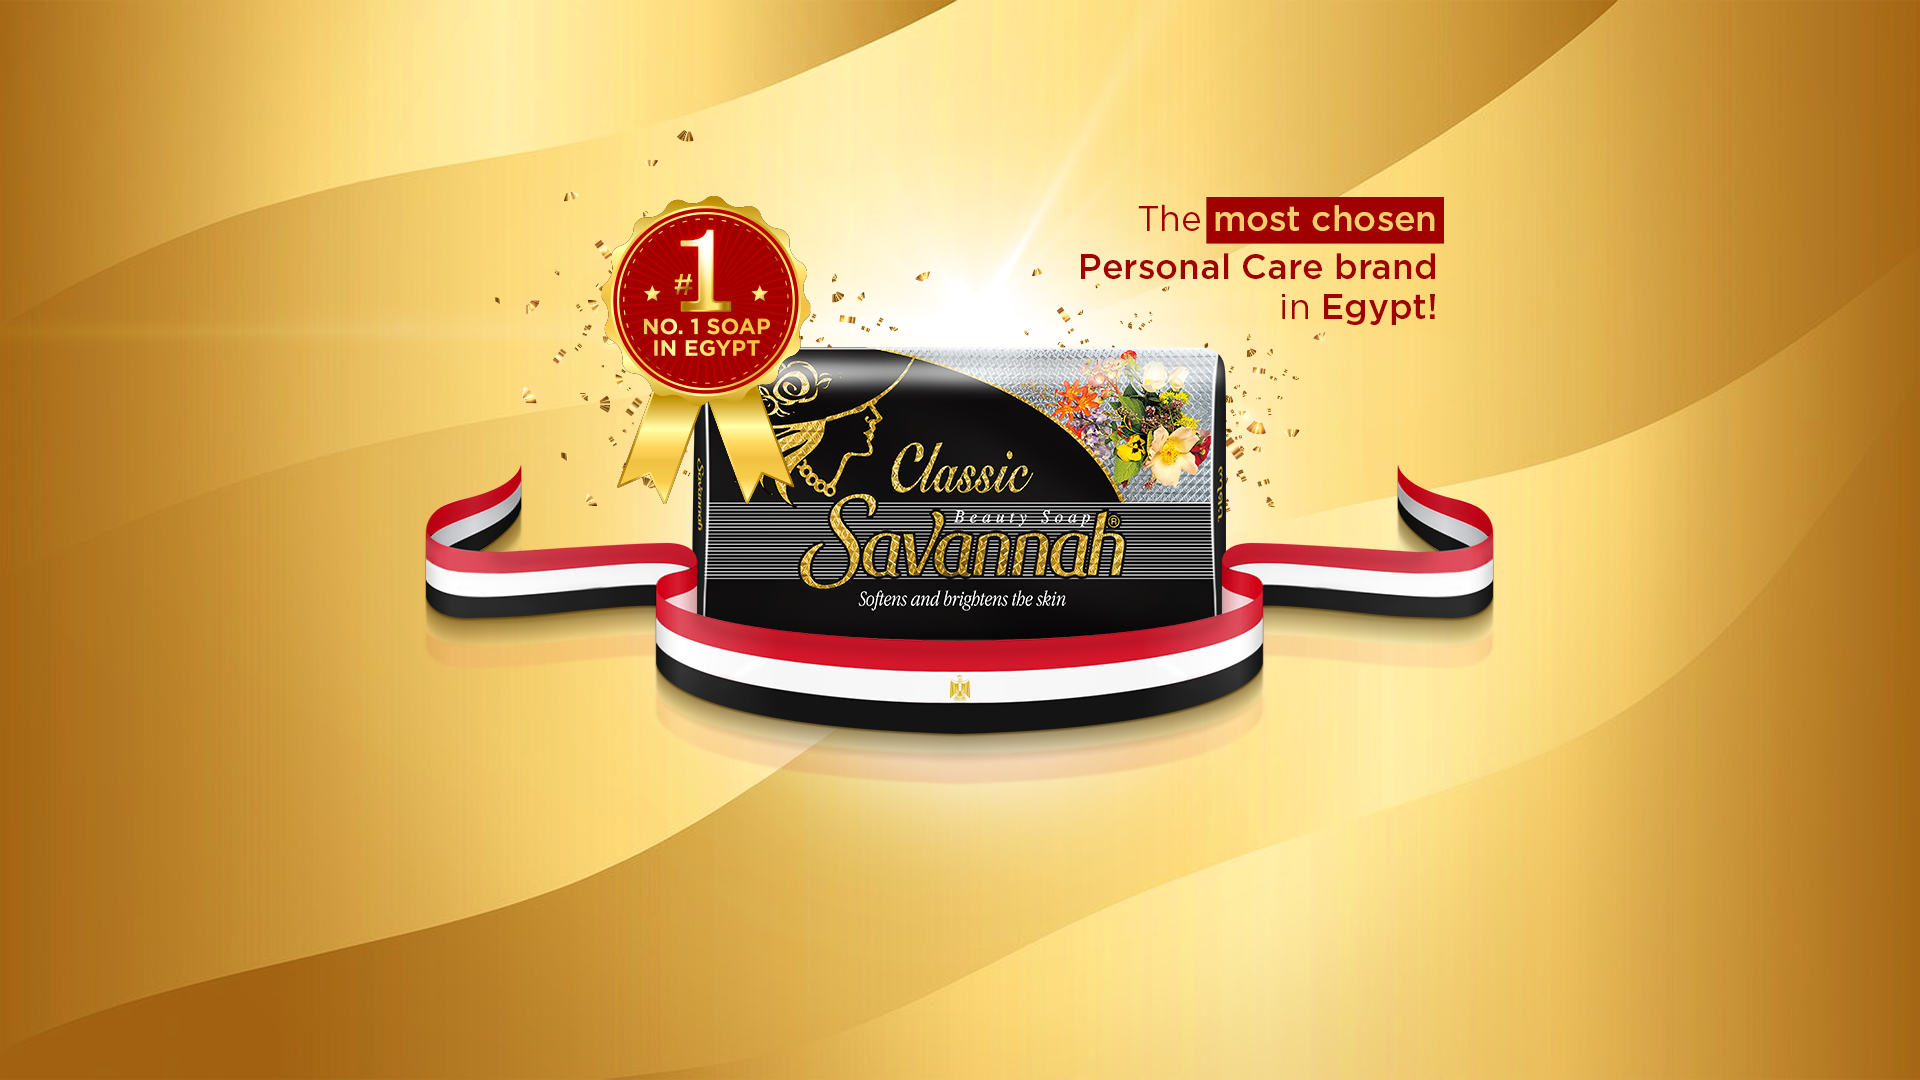 Savannah: Egypt's most chosen brand in the Personal Care Category